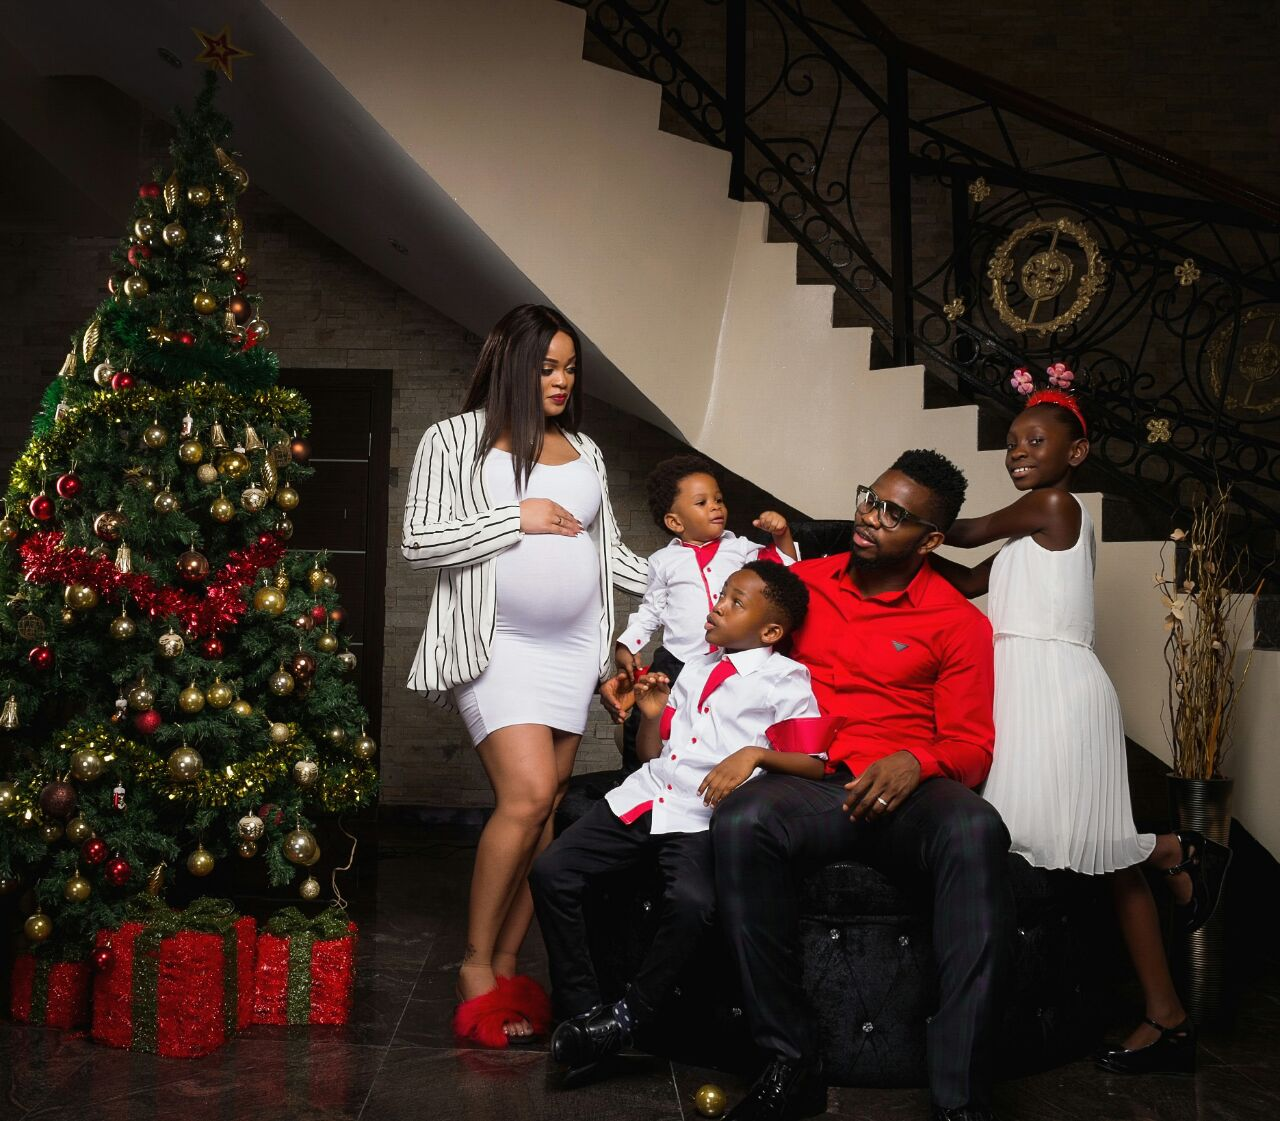 Yobo's Wife: Jesus Here For Our Coming New Baby